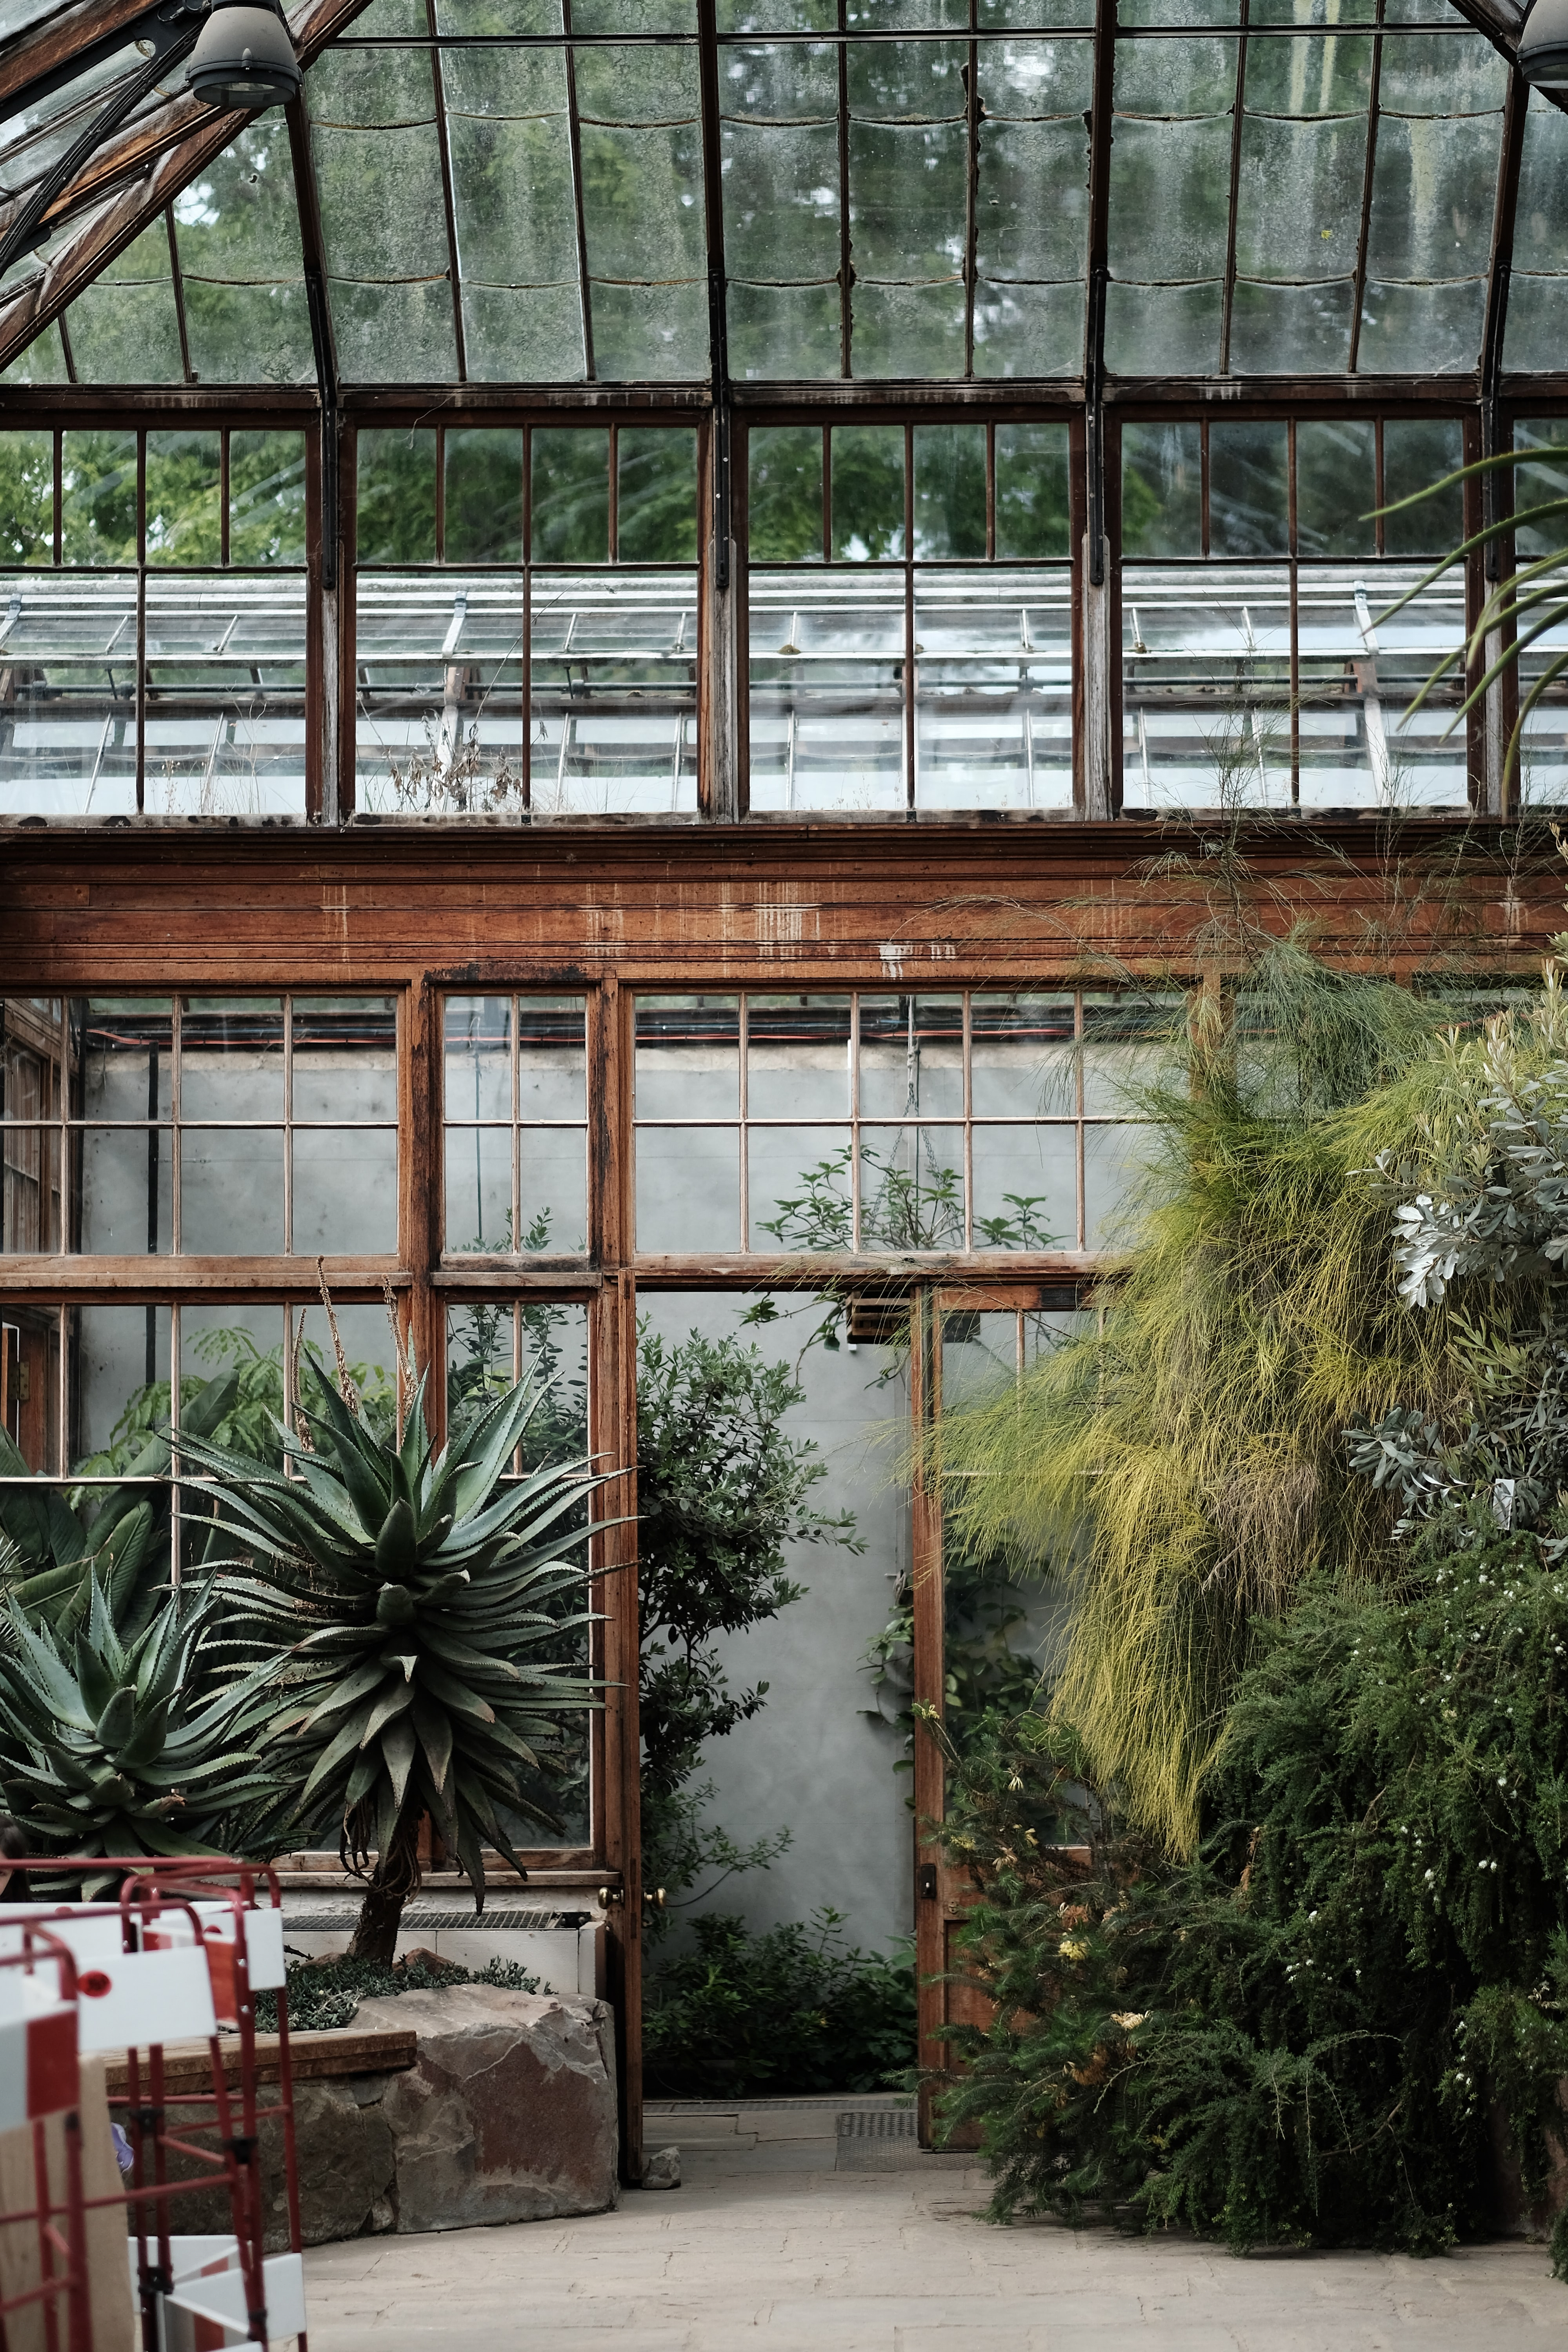 An inside look at a glass house garden in Cambridge Botanic Garden Hills Road Entrance